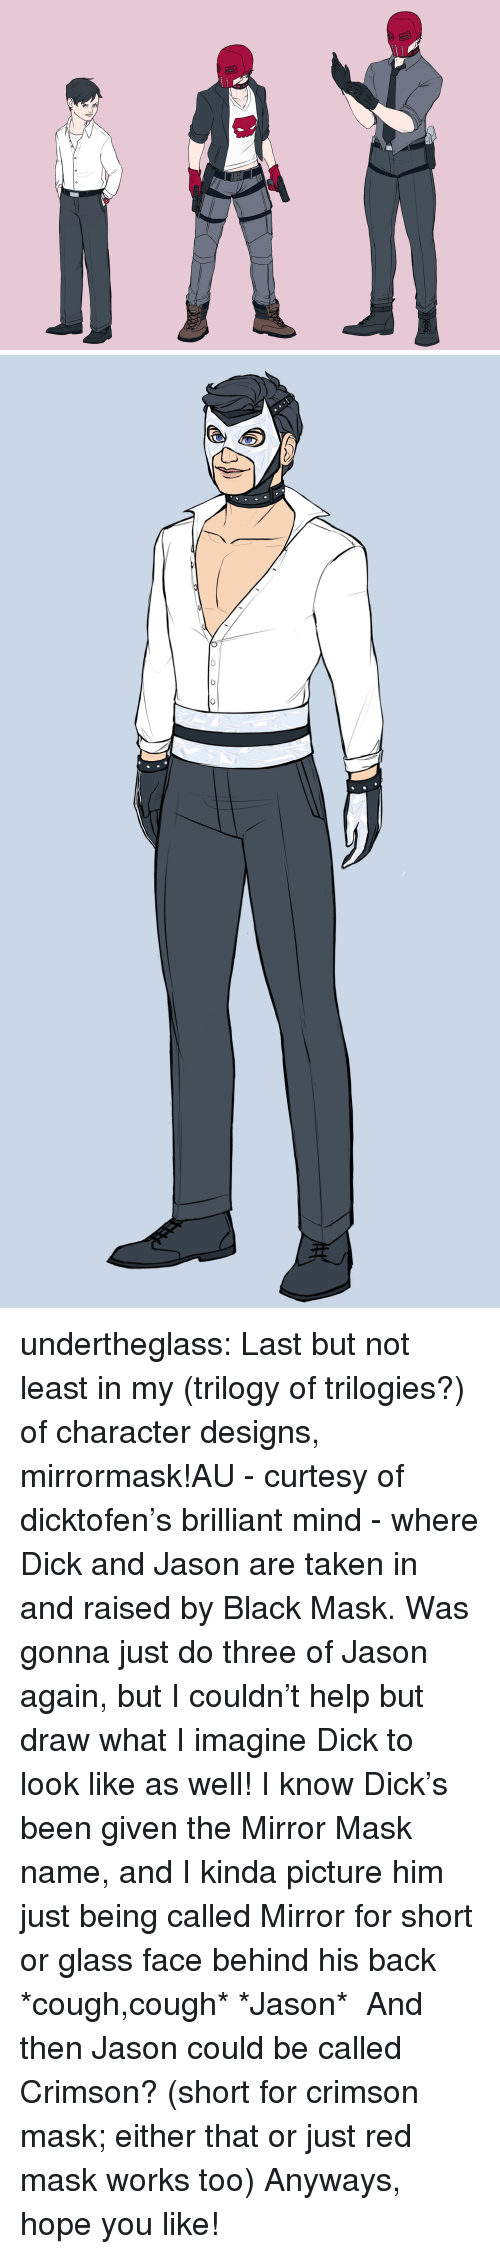 what i imagine: undertheglass:  Last but not least in my (trilogy of trilogies?) of character designs, mirrormask!AU - curtesy of dicktofen's brilliant mind - where Dick and Jason are taken in and raised by Black Mask. Was gonna just do three of Jason again, but I couldn't help but draw what I imagine Dick to look like as well! I know Dick's been given the Mirror Mask name, and I kinda picture him just being called Mirror for short or glass face behind his back *cough,cough* *Jason* And then Jason could be called Crimson? (short for crimson mask; either that or just red mask works too) Anyways, hope you like!